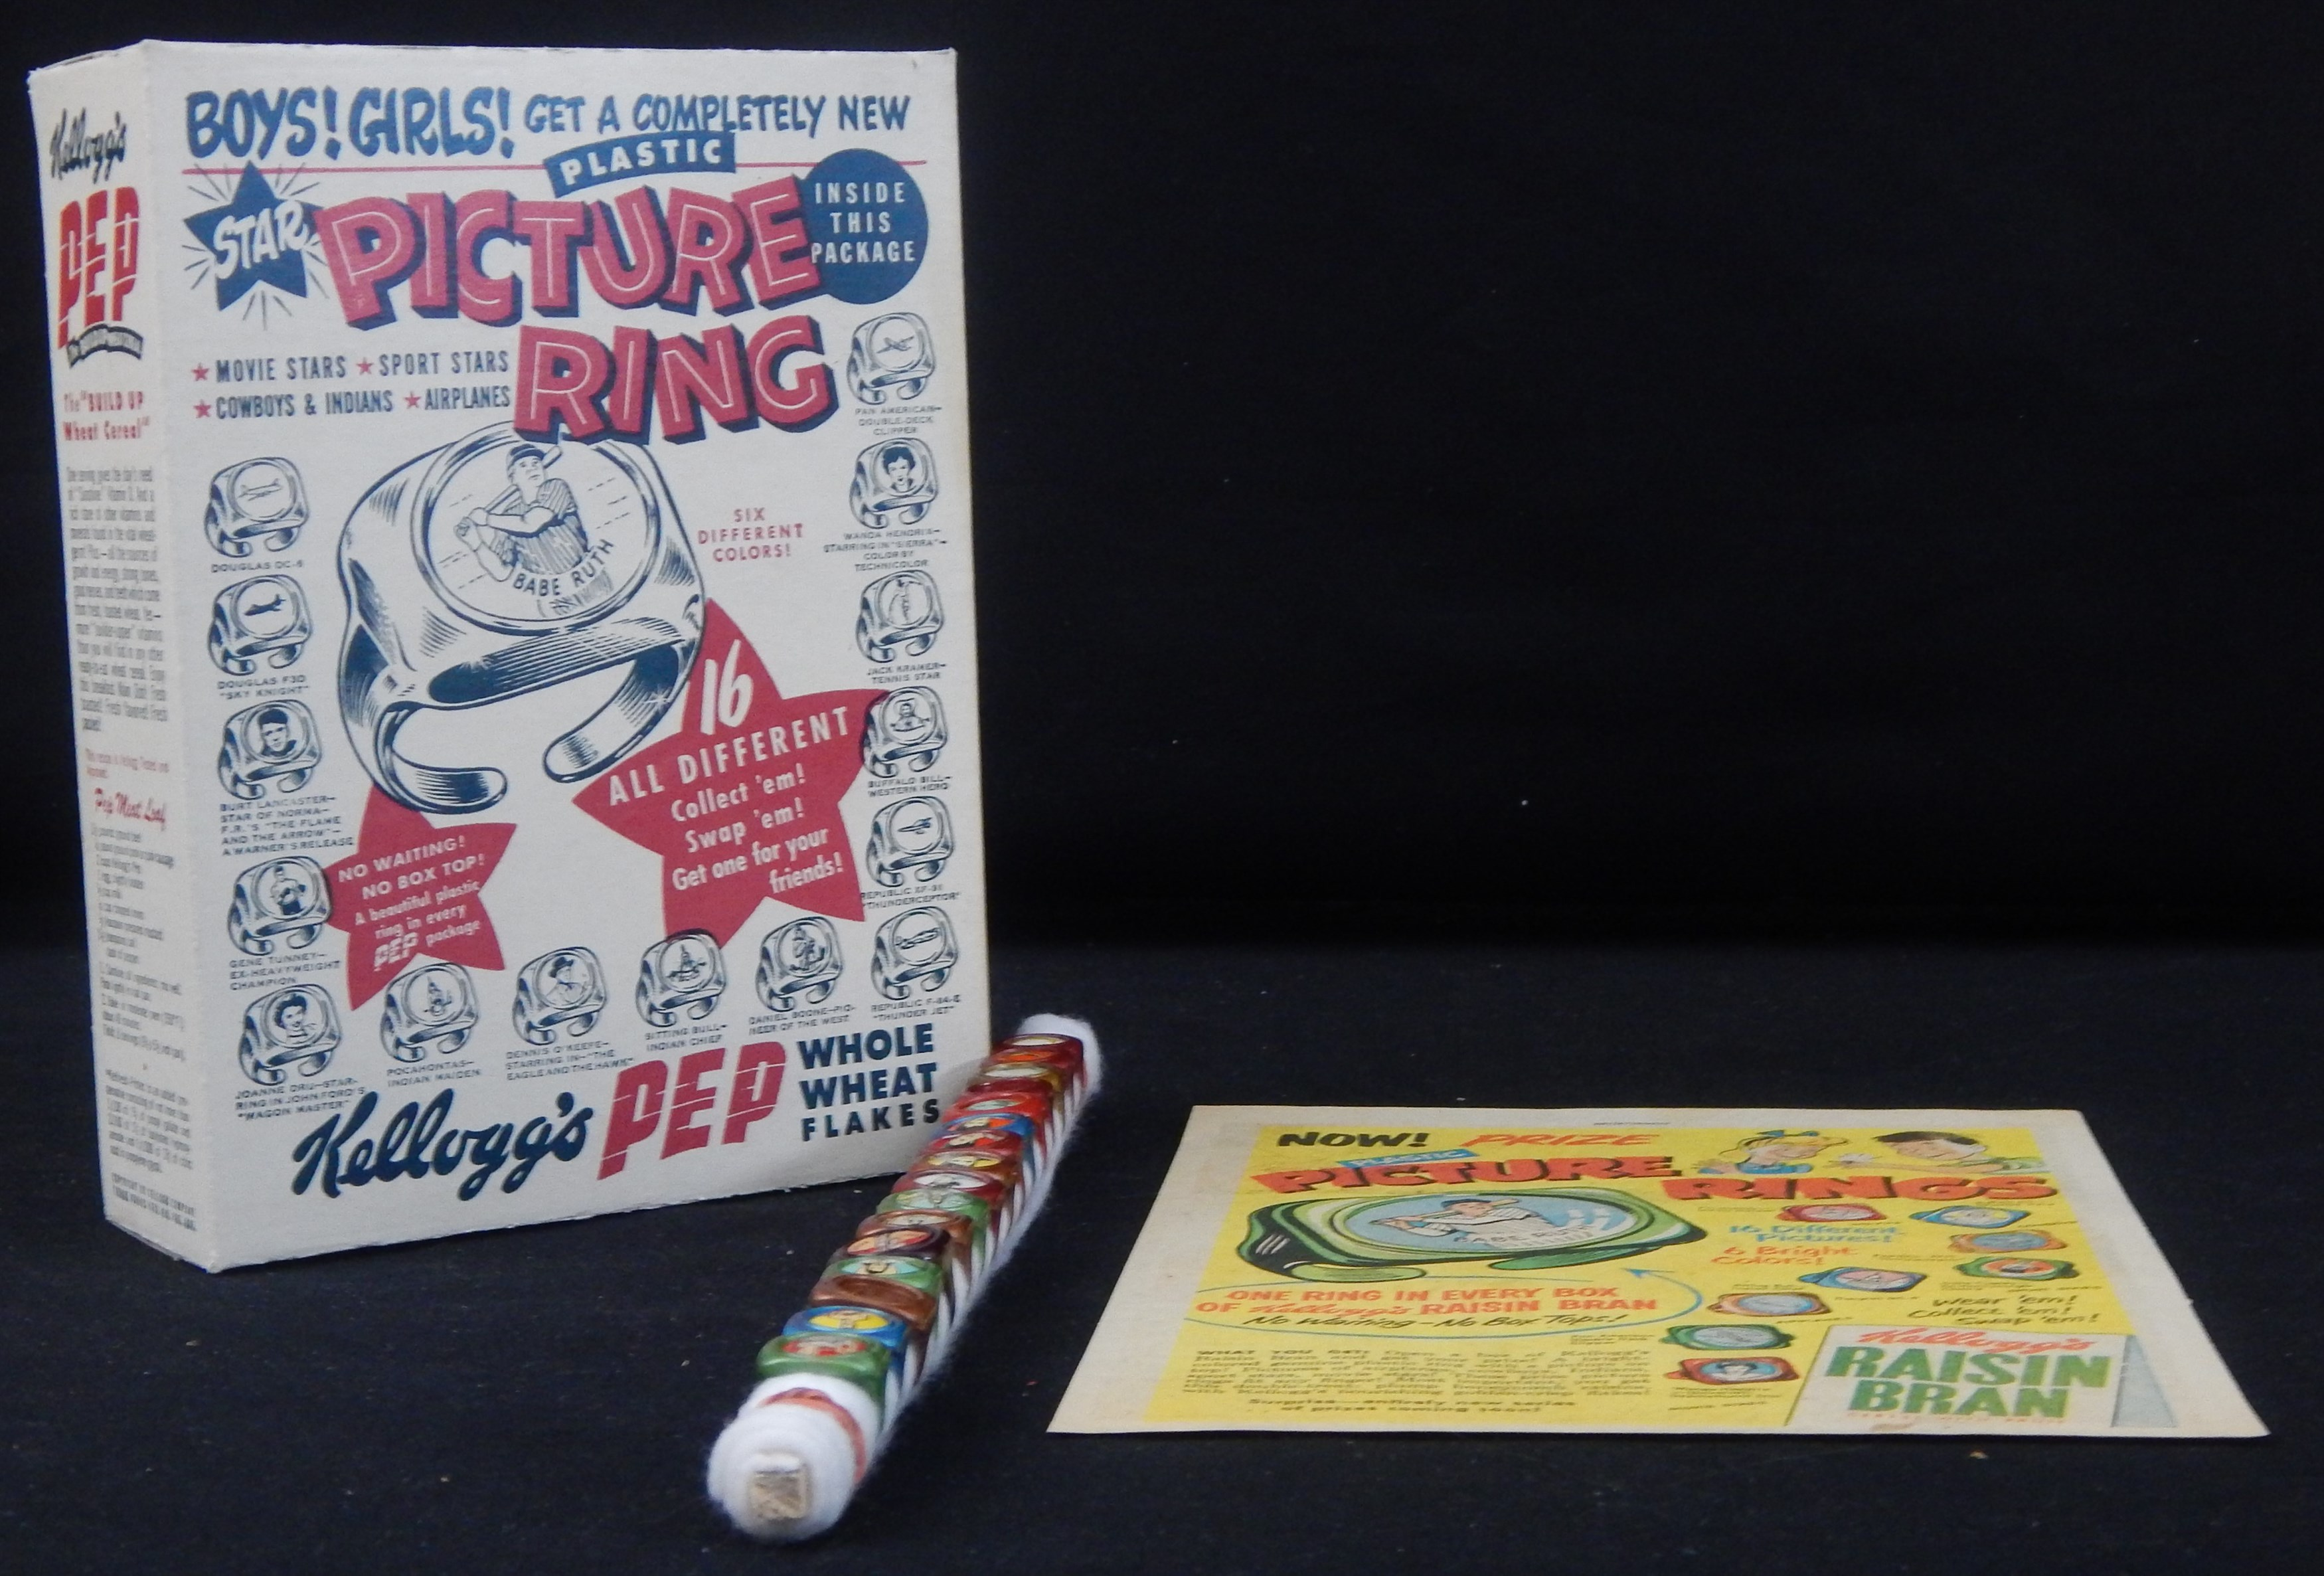 Babe Ruth 1951 Kellogg's Premium Ring Complete Set & Original Cereal Box